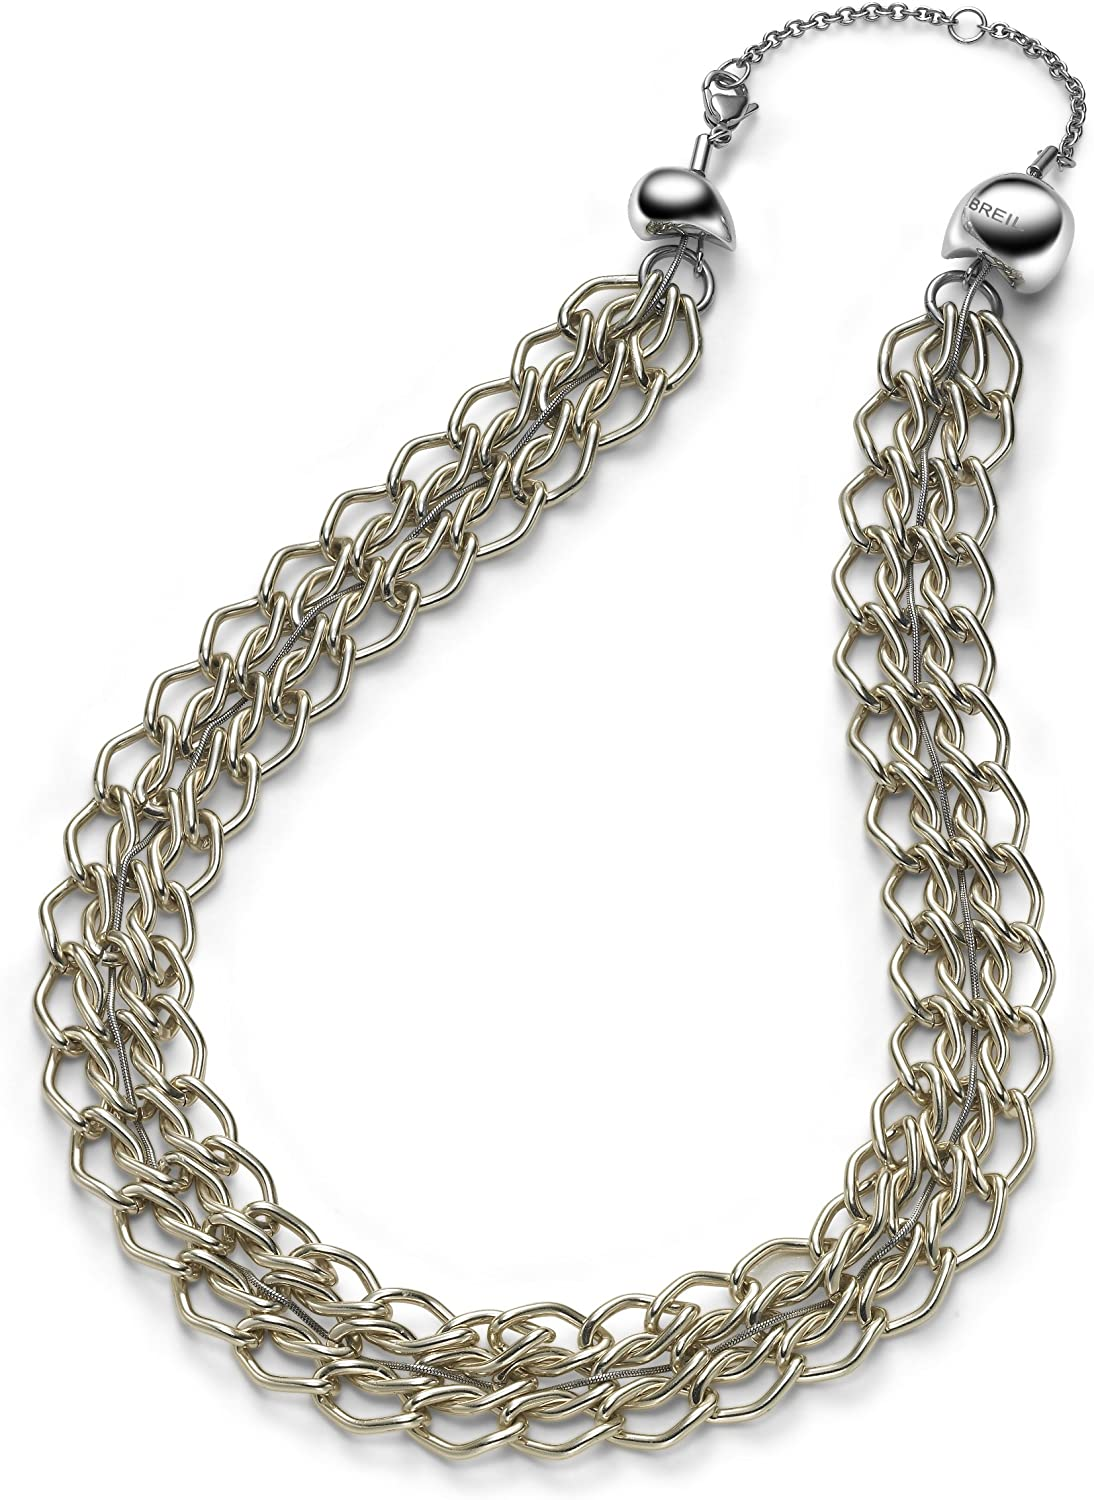 BREIL TJ1361 Stainless Steel Woman Necklace